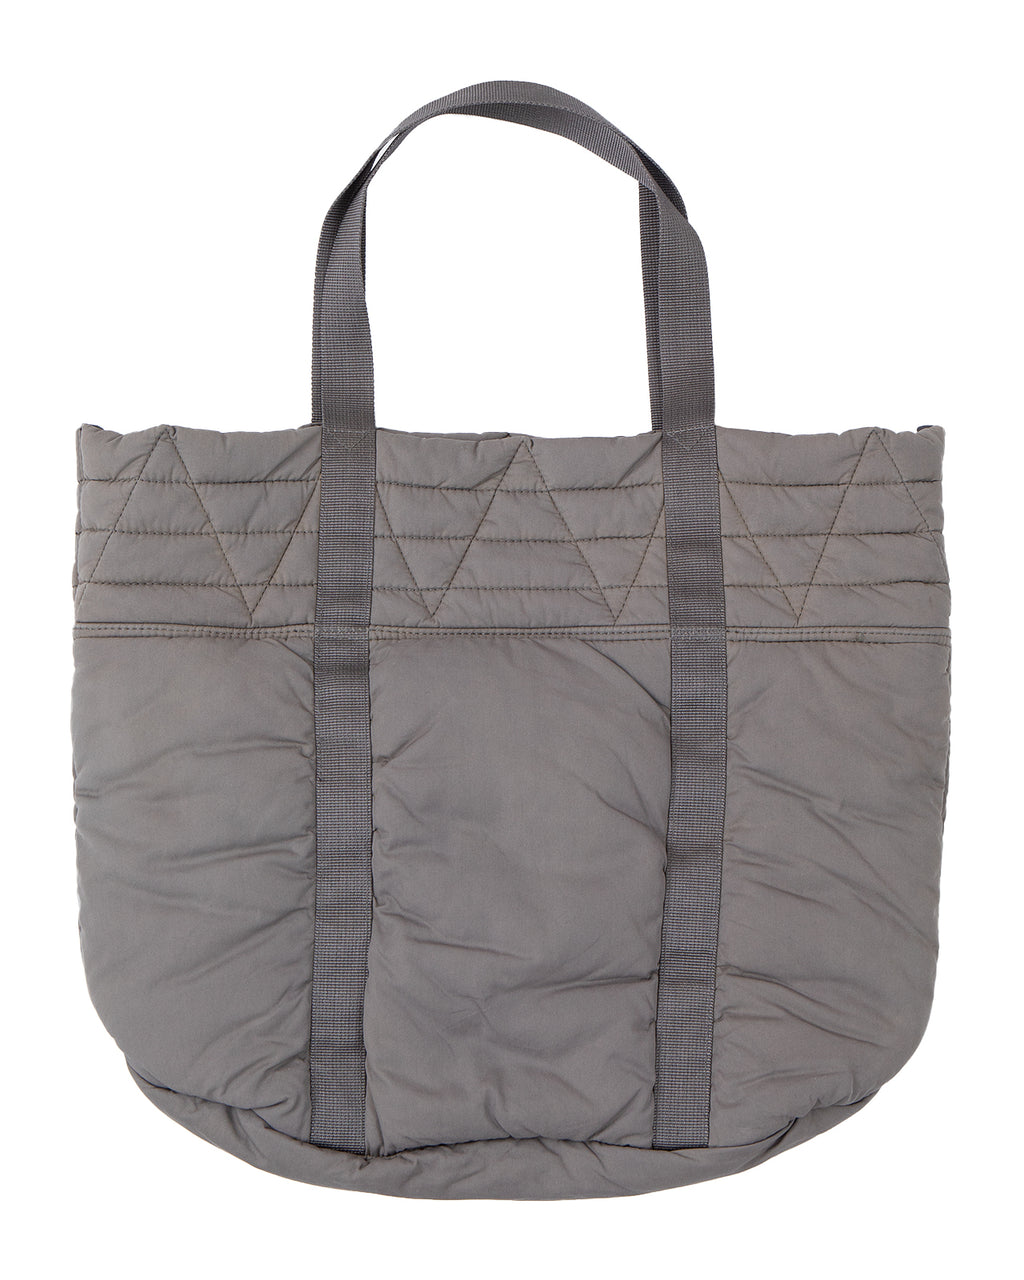 Visvim N.A.P Tote, Medium, Grey